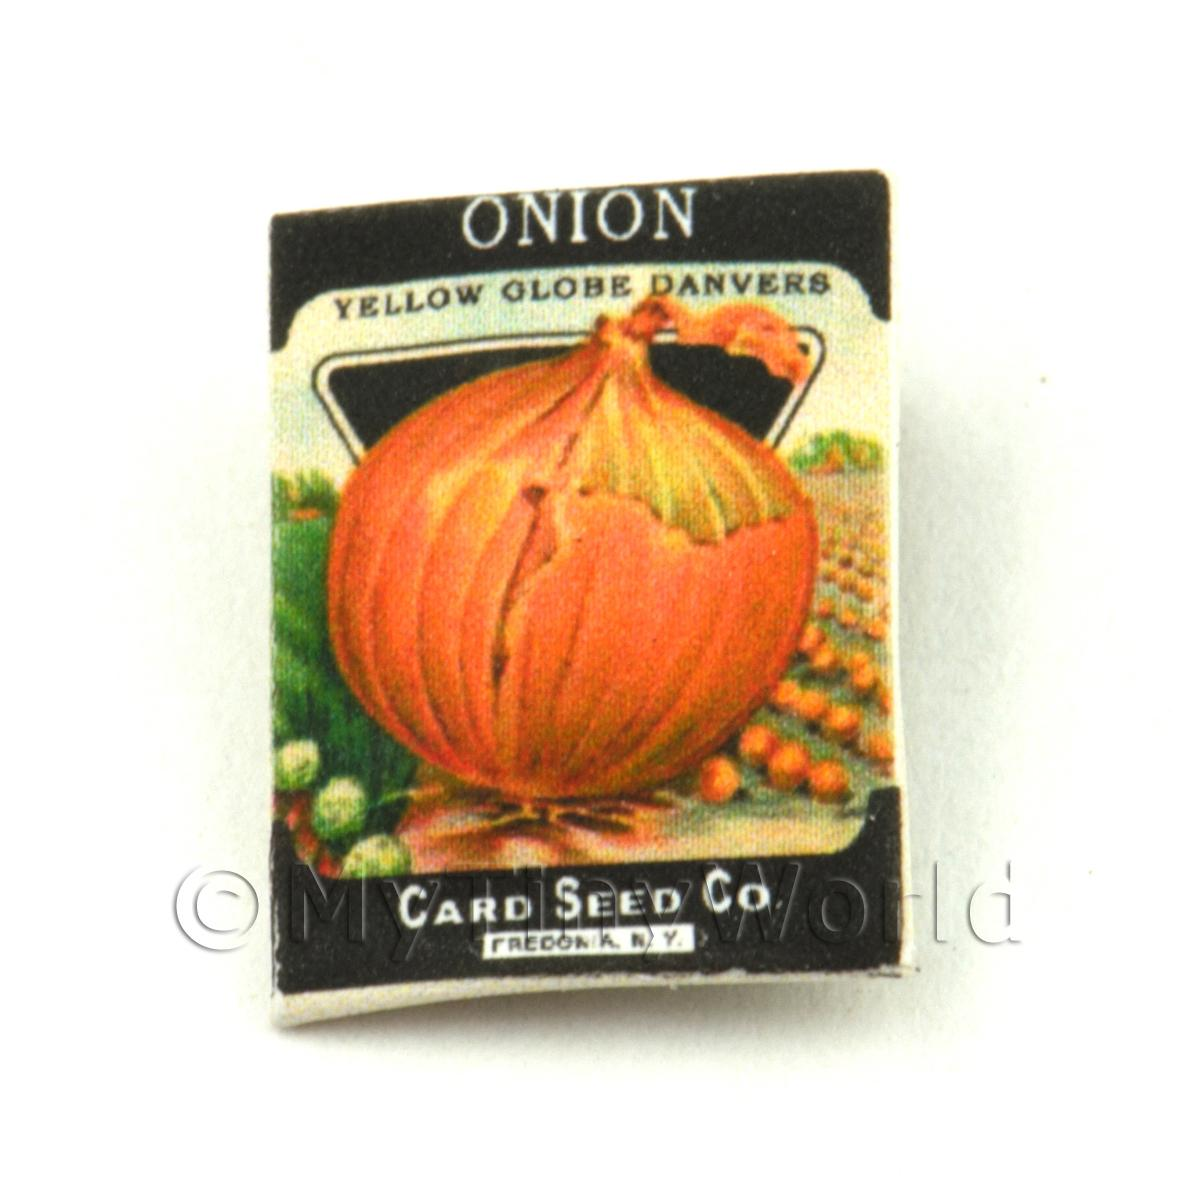 Dolls House Miniature Garden Yellow Onion Seed Packet